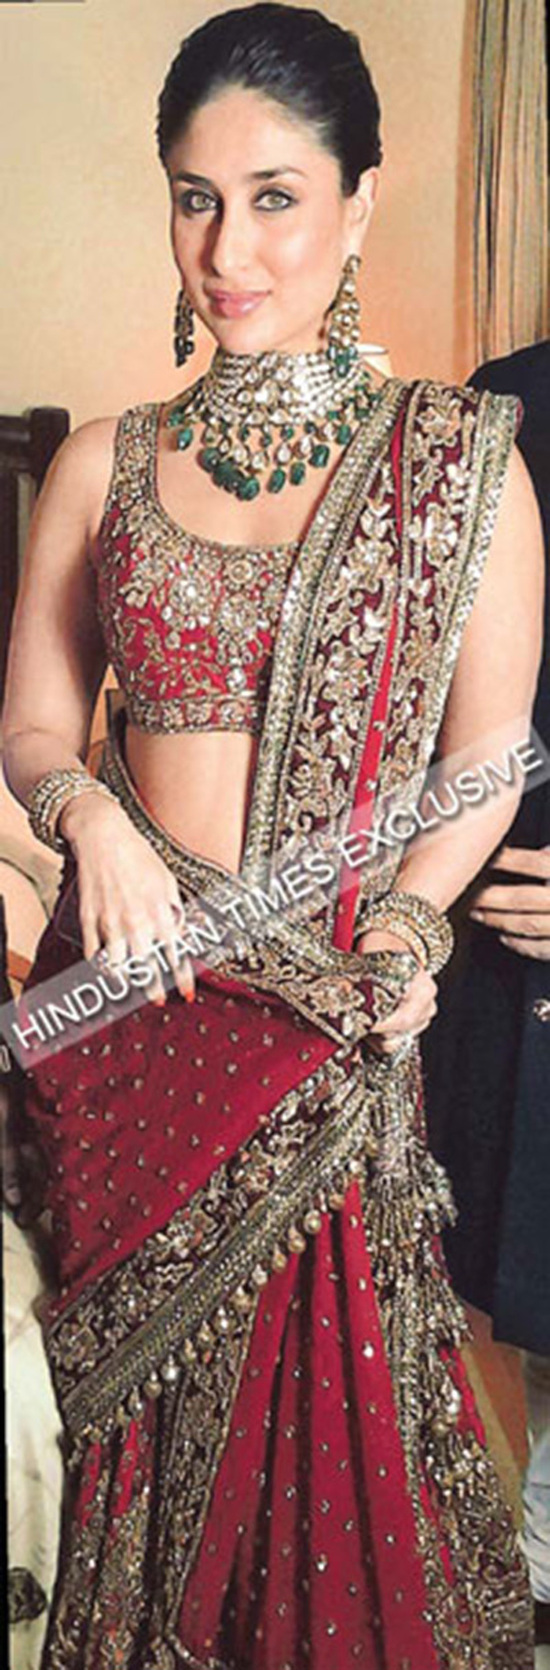 Exclusive first pictures of Kareena Kapoor as a bride! - Talk Bollywood